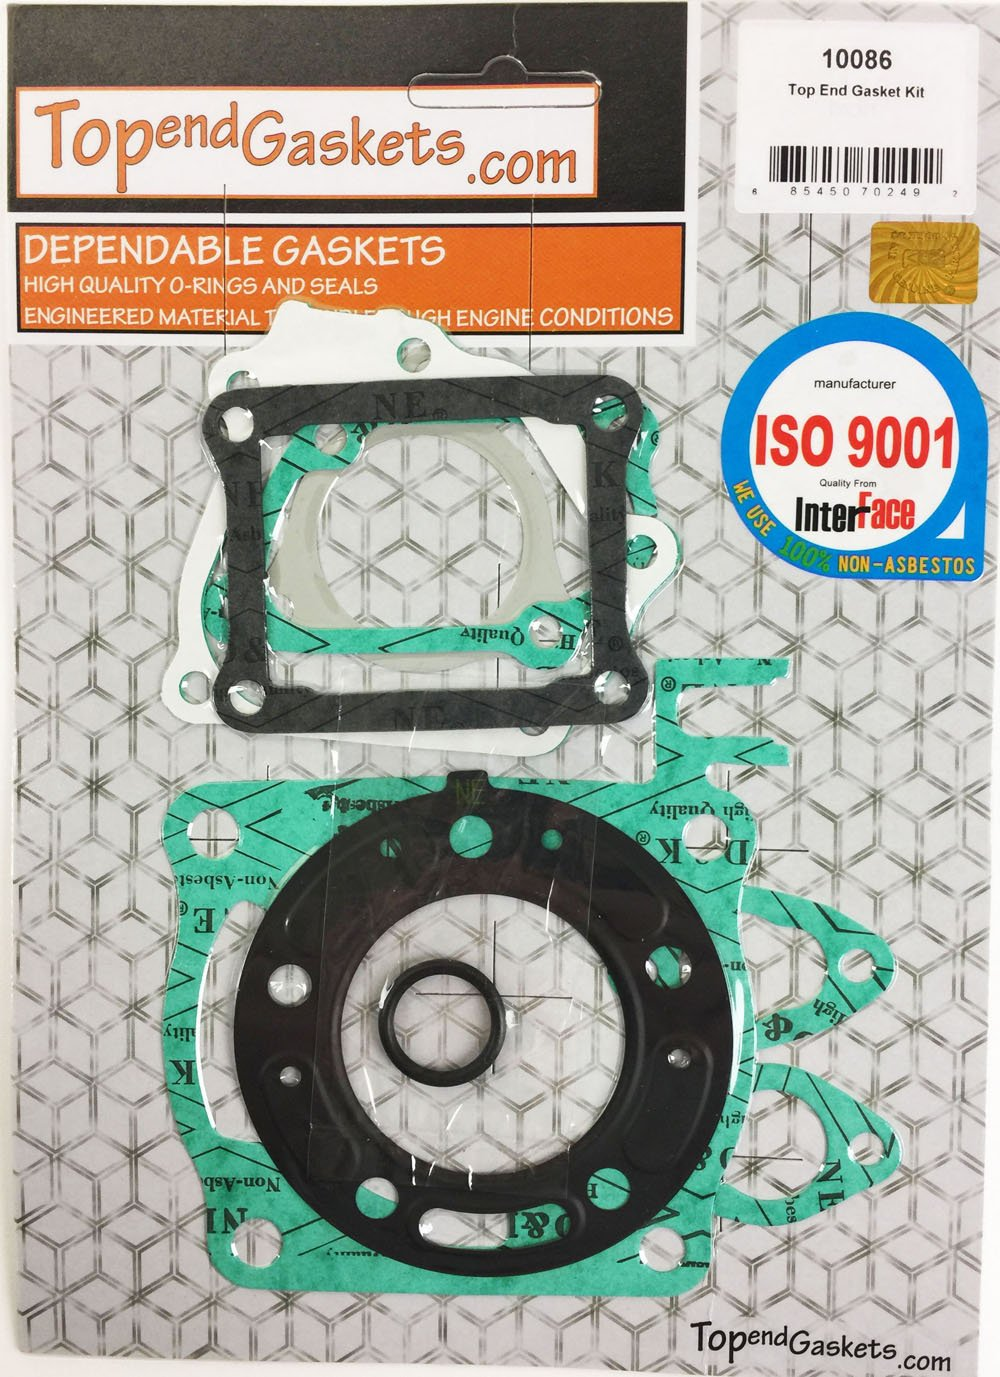 1997 TopendGaskets Brand Gasket Kit Replacement for Honda CR125R 1990